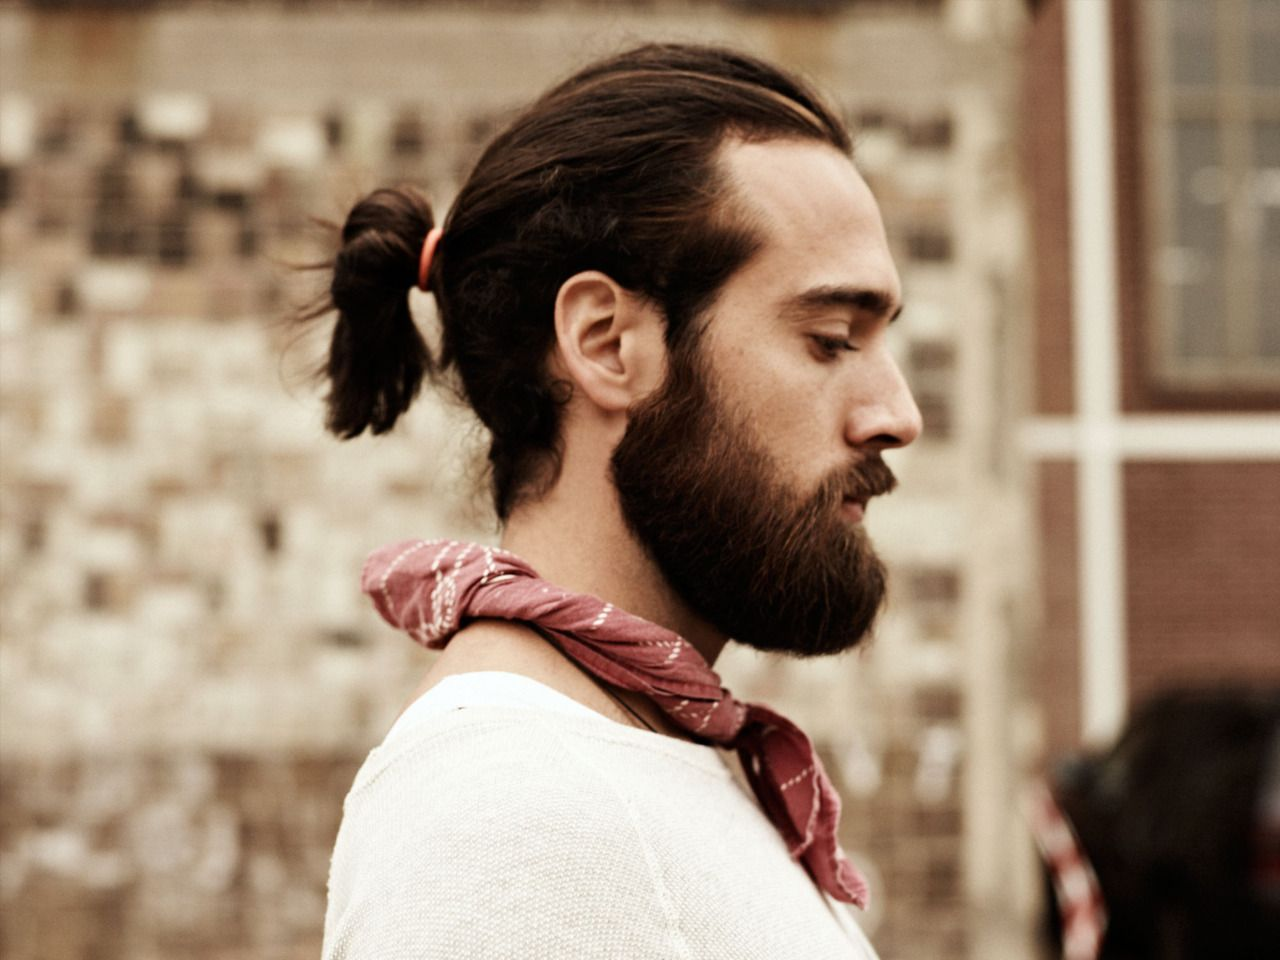 one either loves or hates ponytails on men. i happen to love them